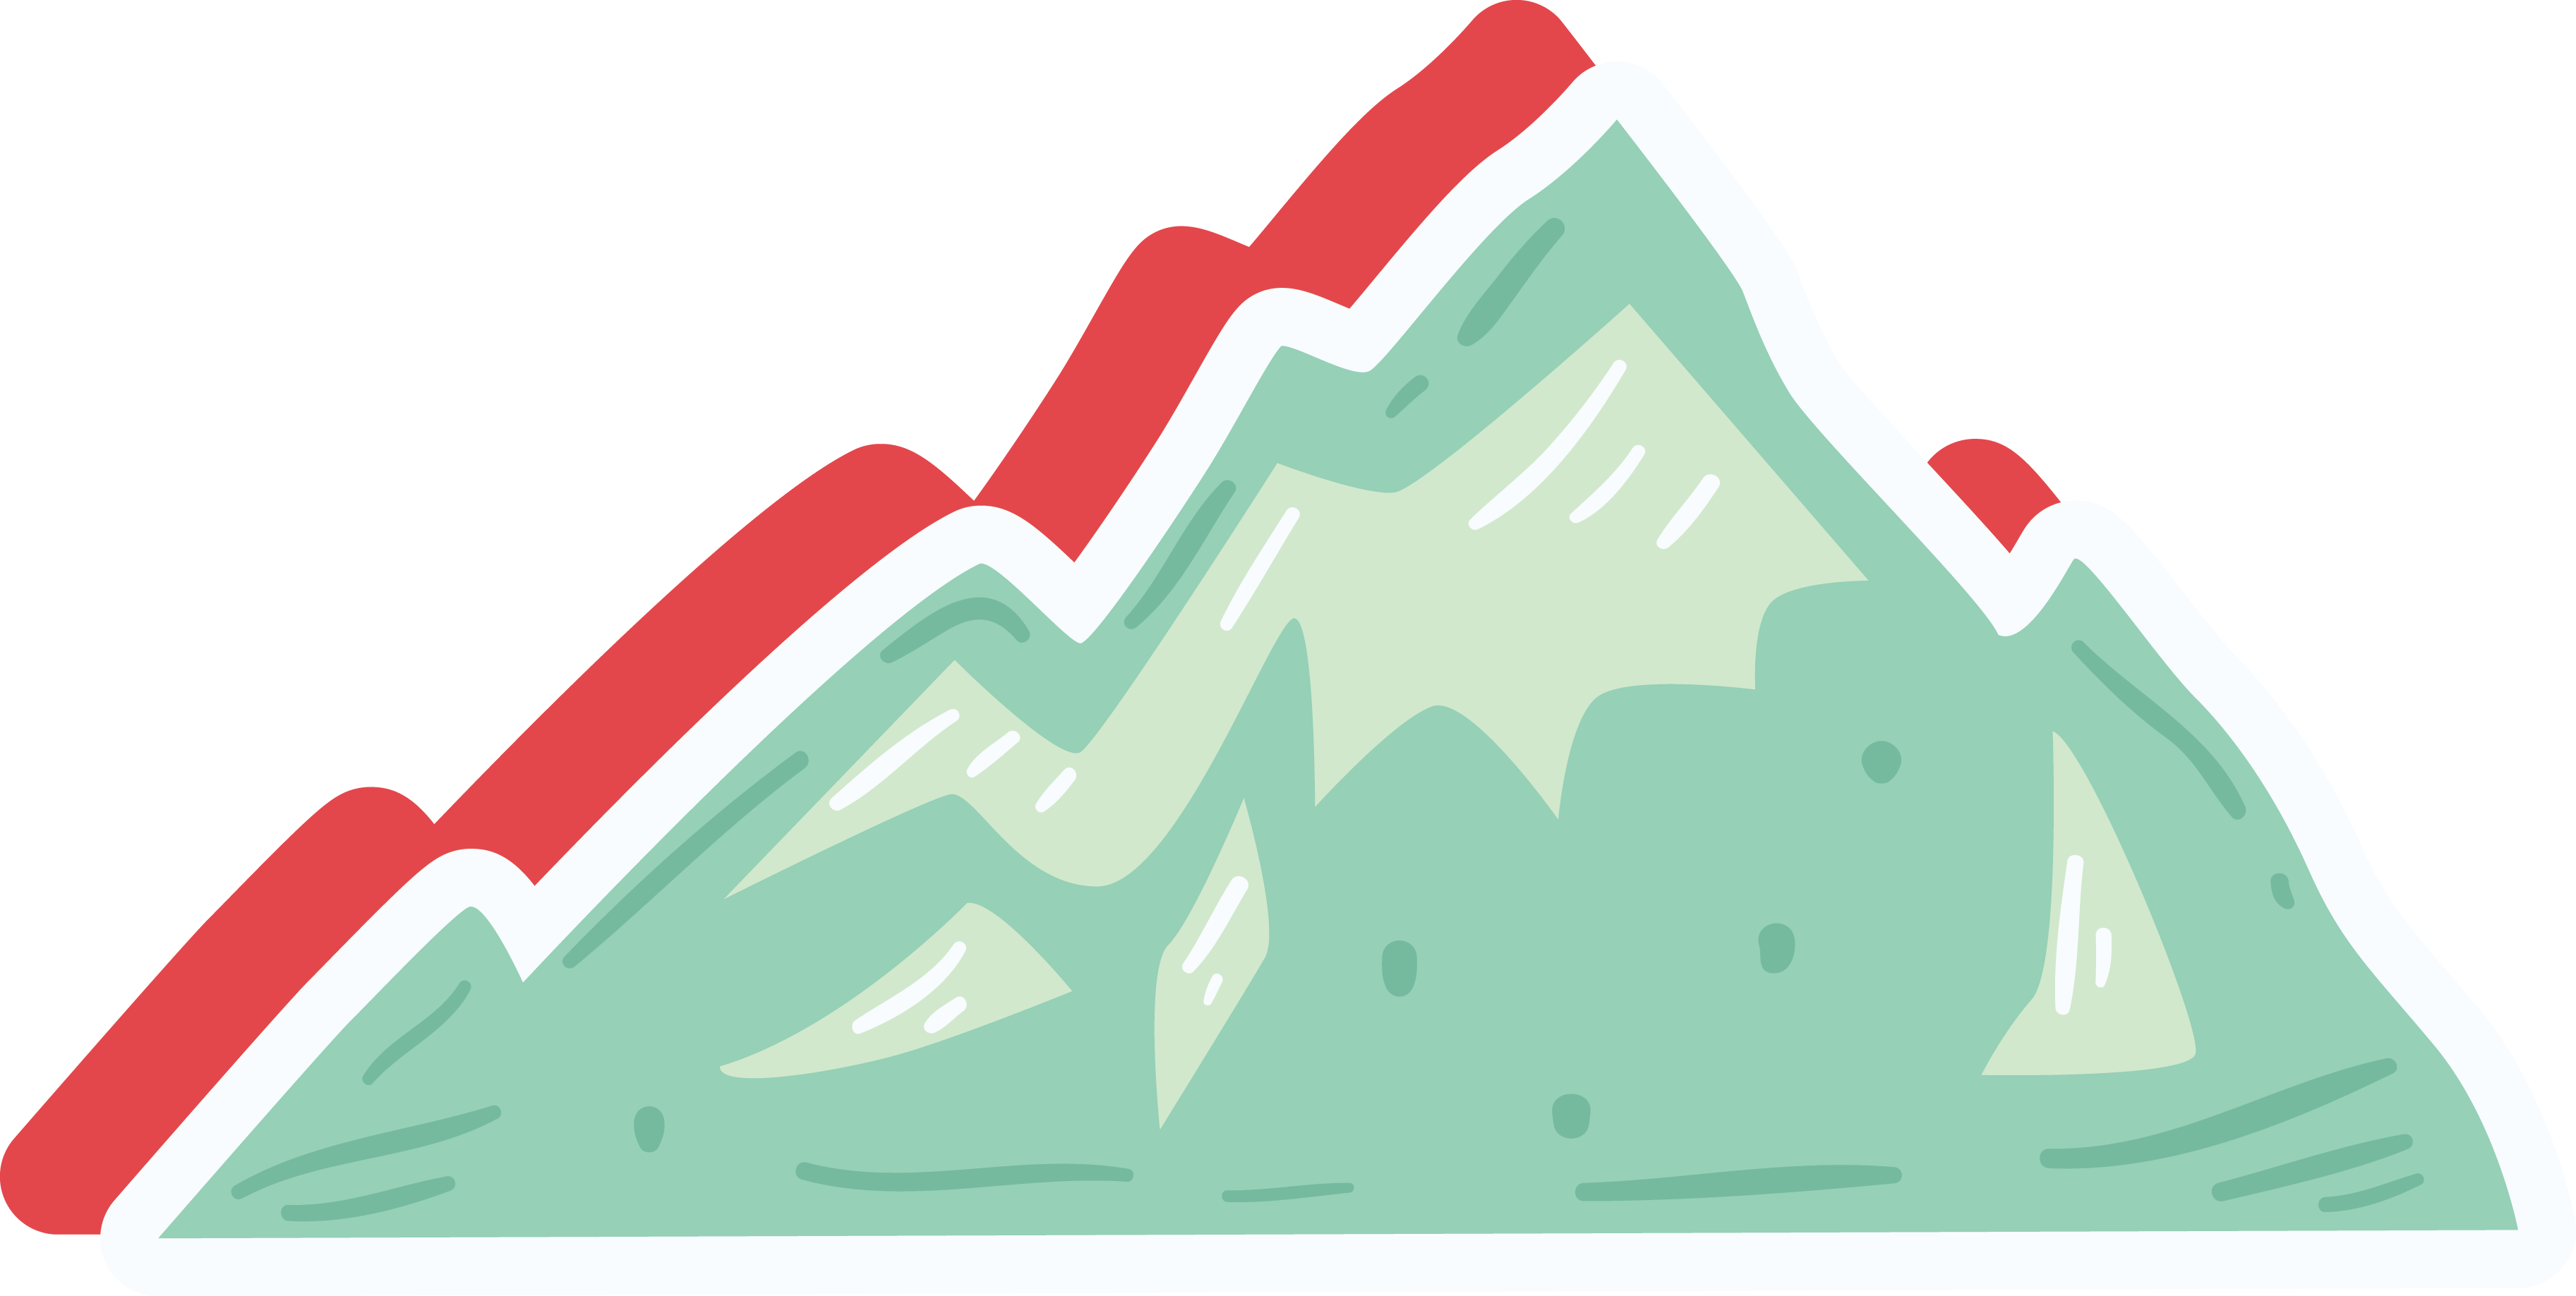 Mountain cartoon png. Clip art green icon